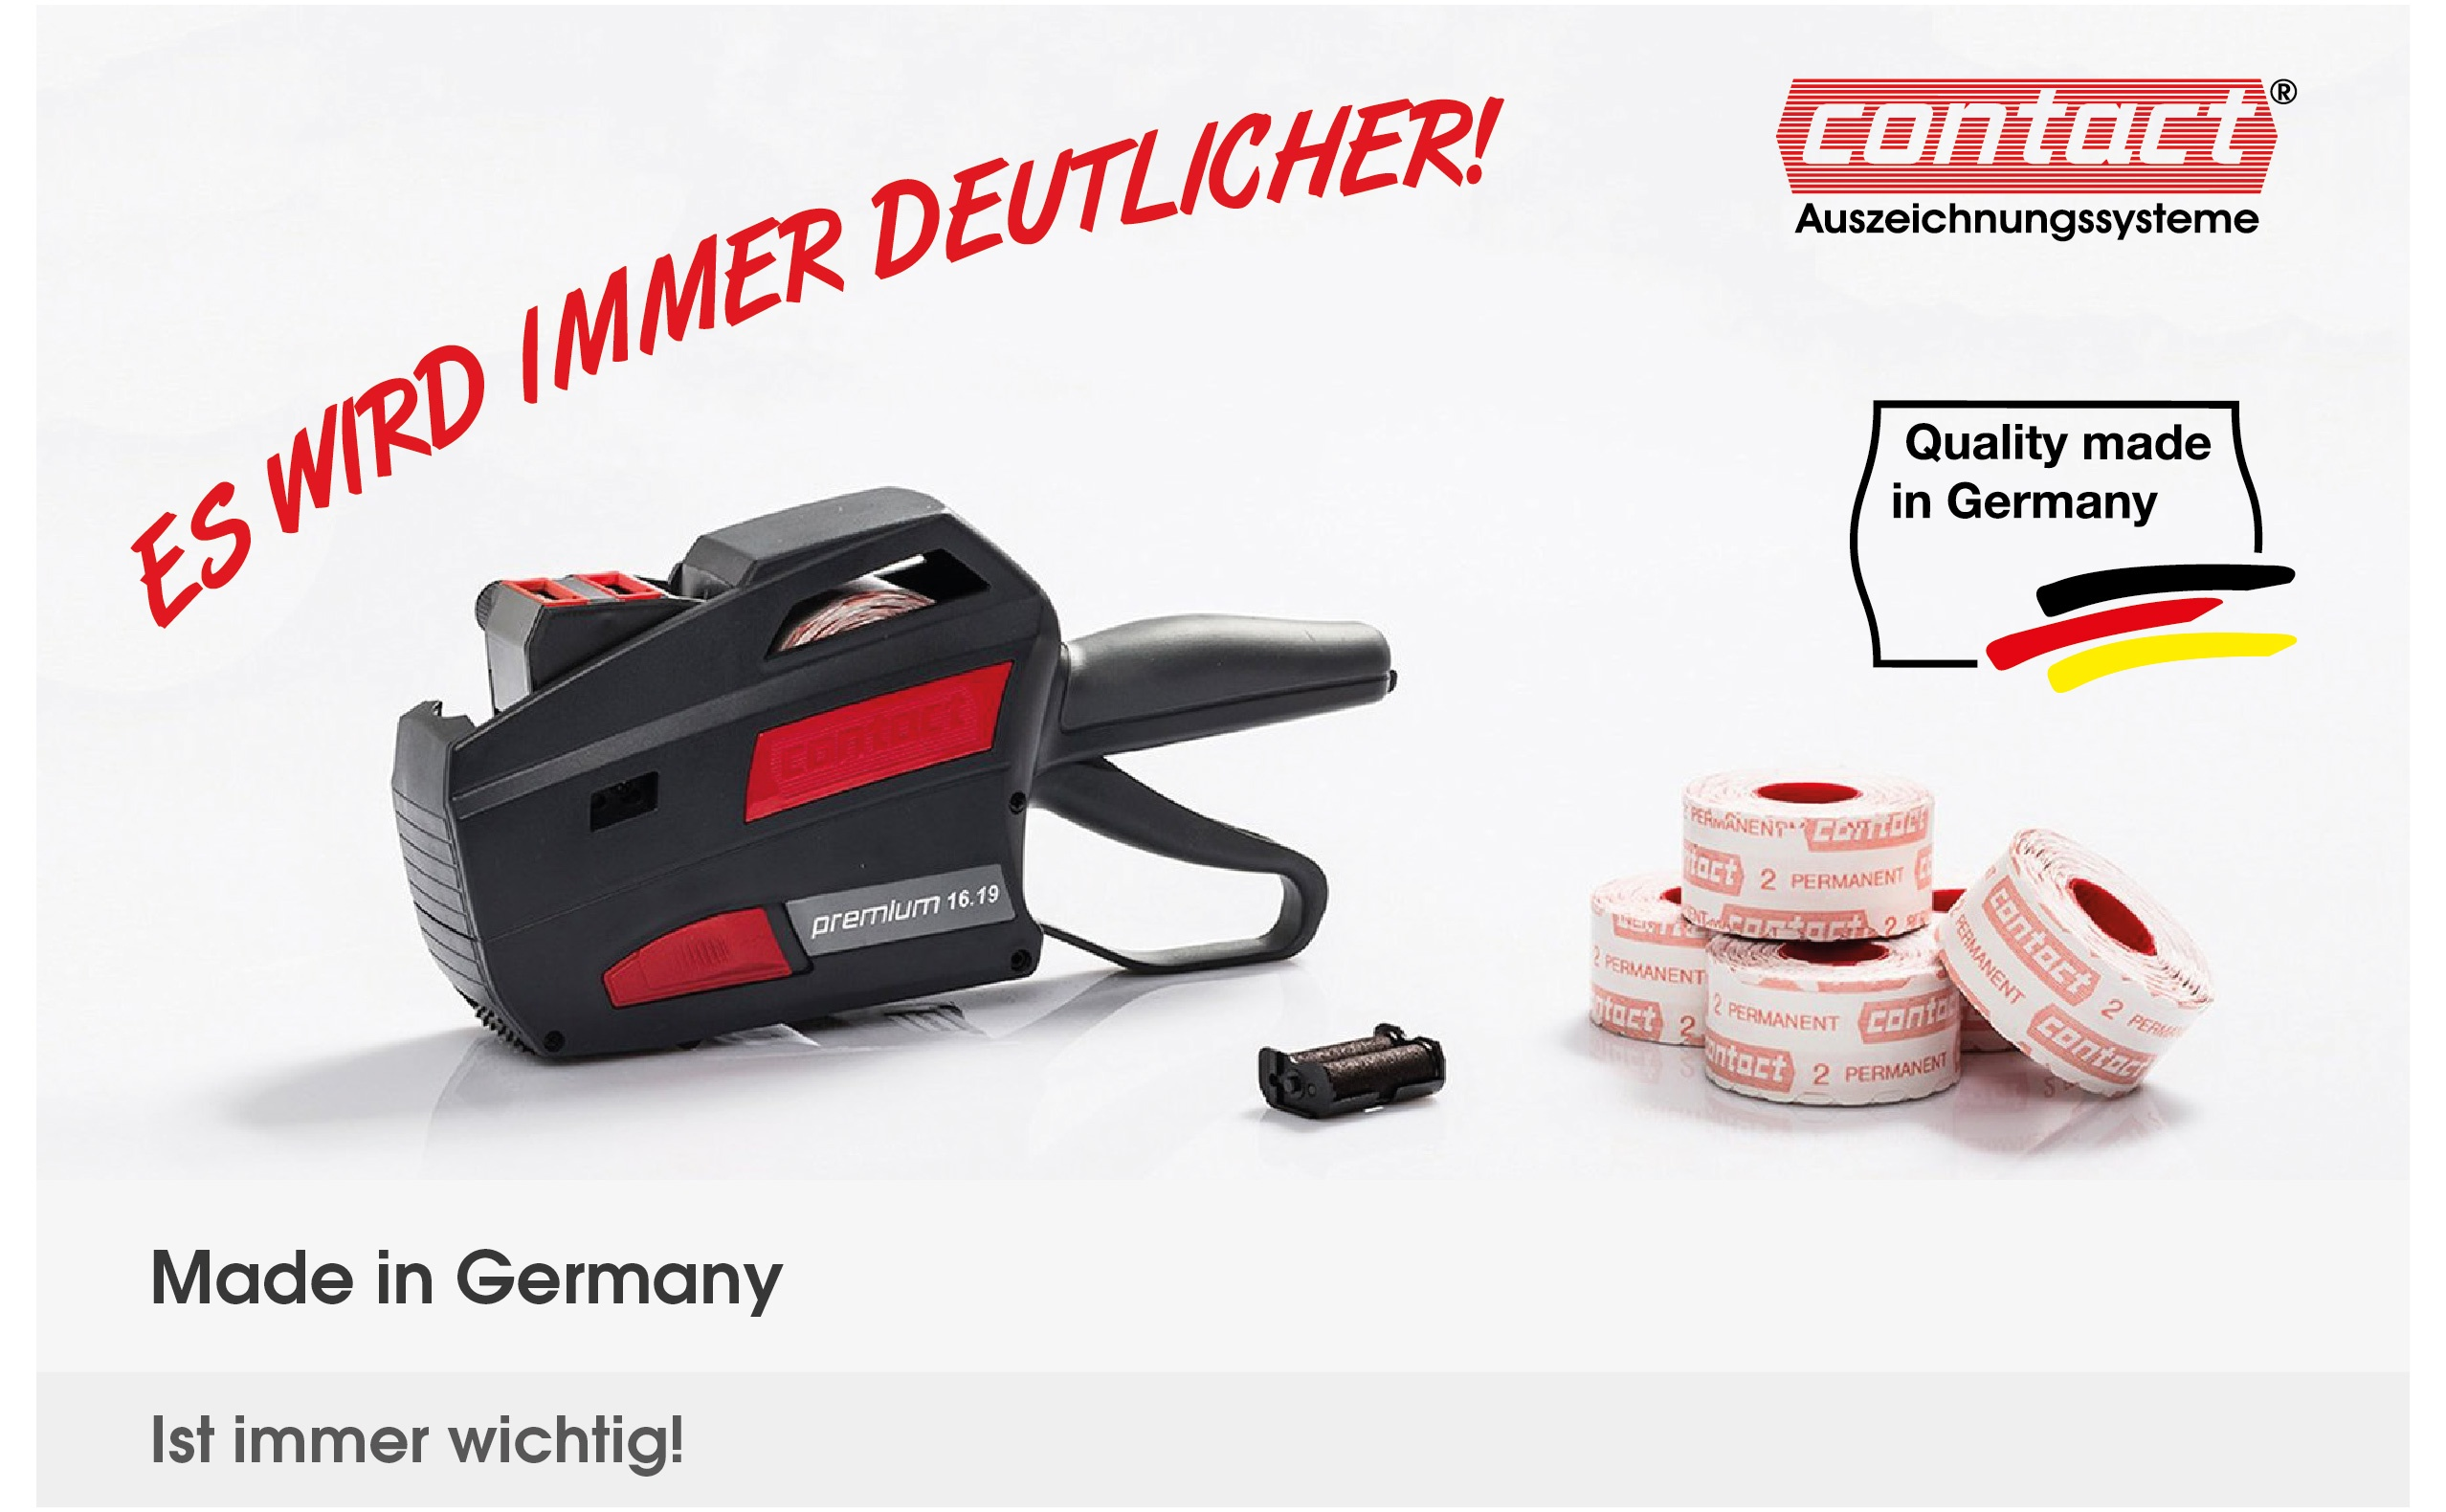 made-in-germany_contact - contact Auszeichnungssysteme